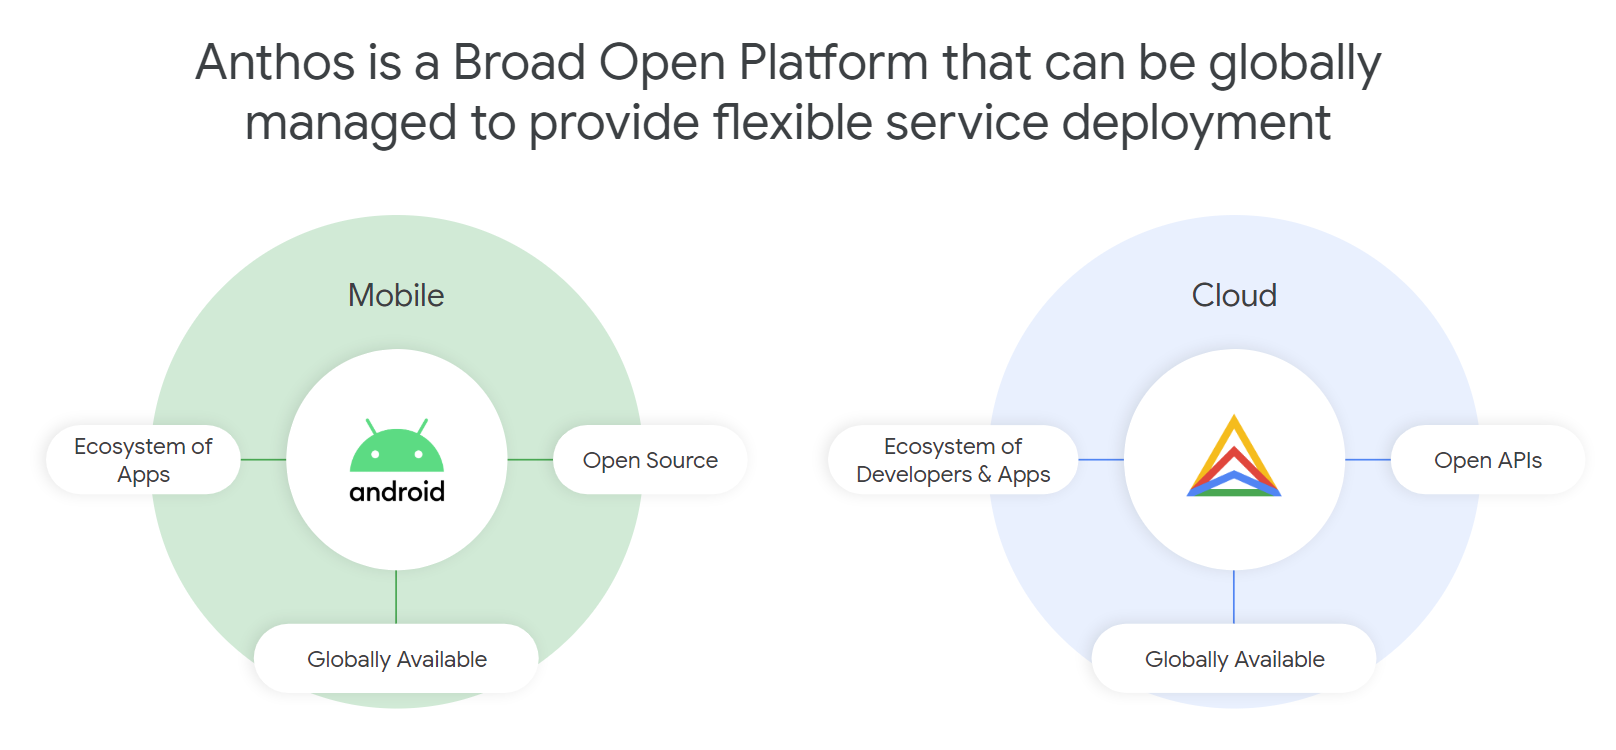 Google Cloud Goes After The Telco Business With Anthos For Telecom